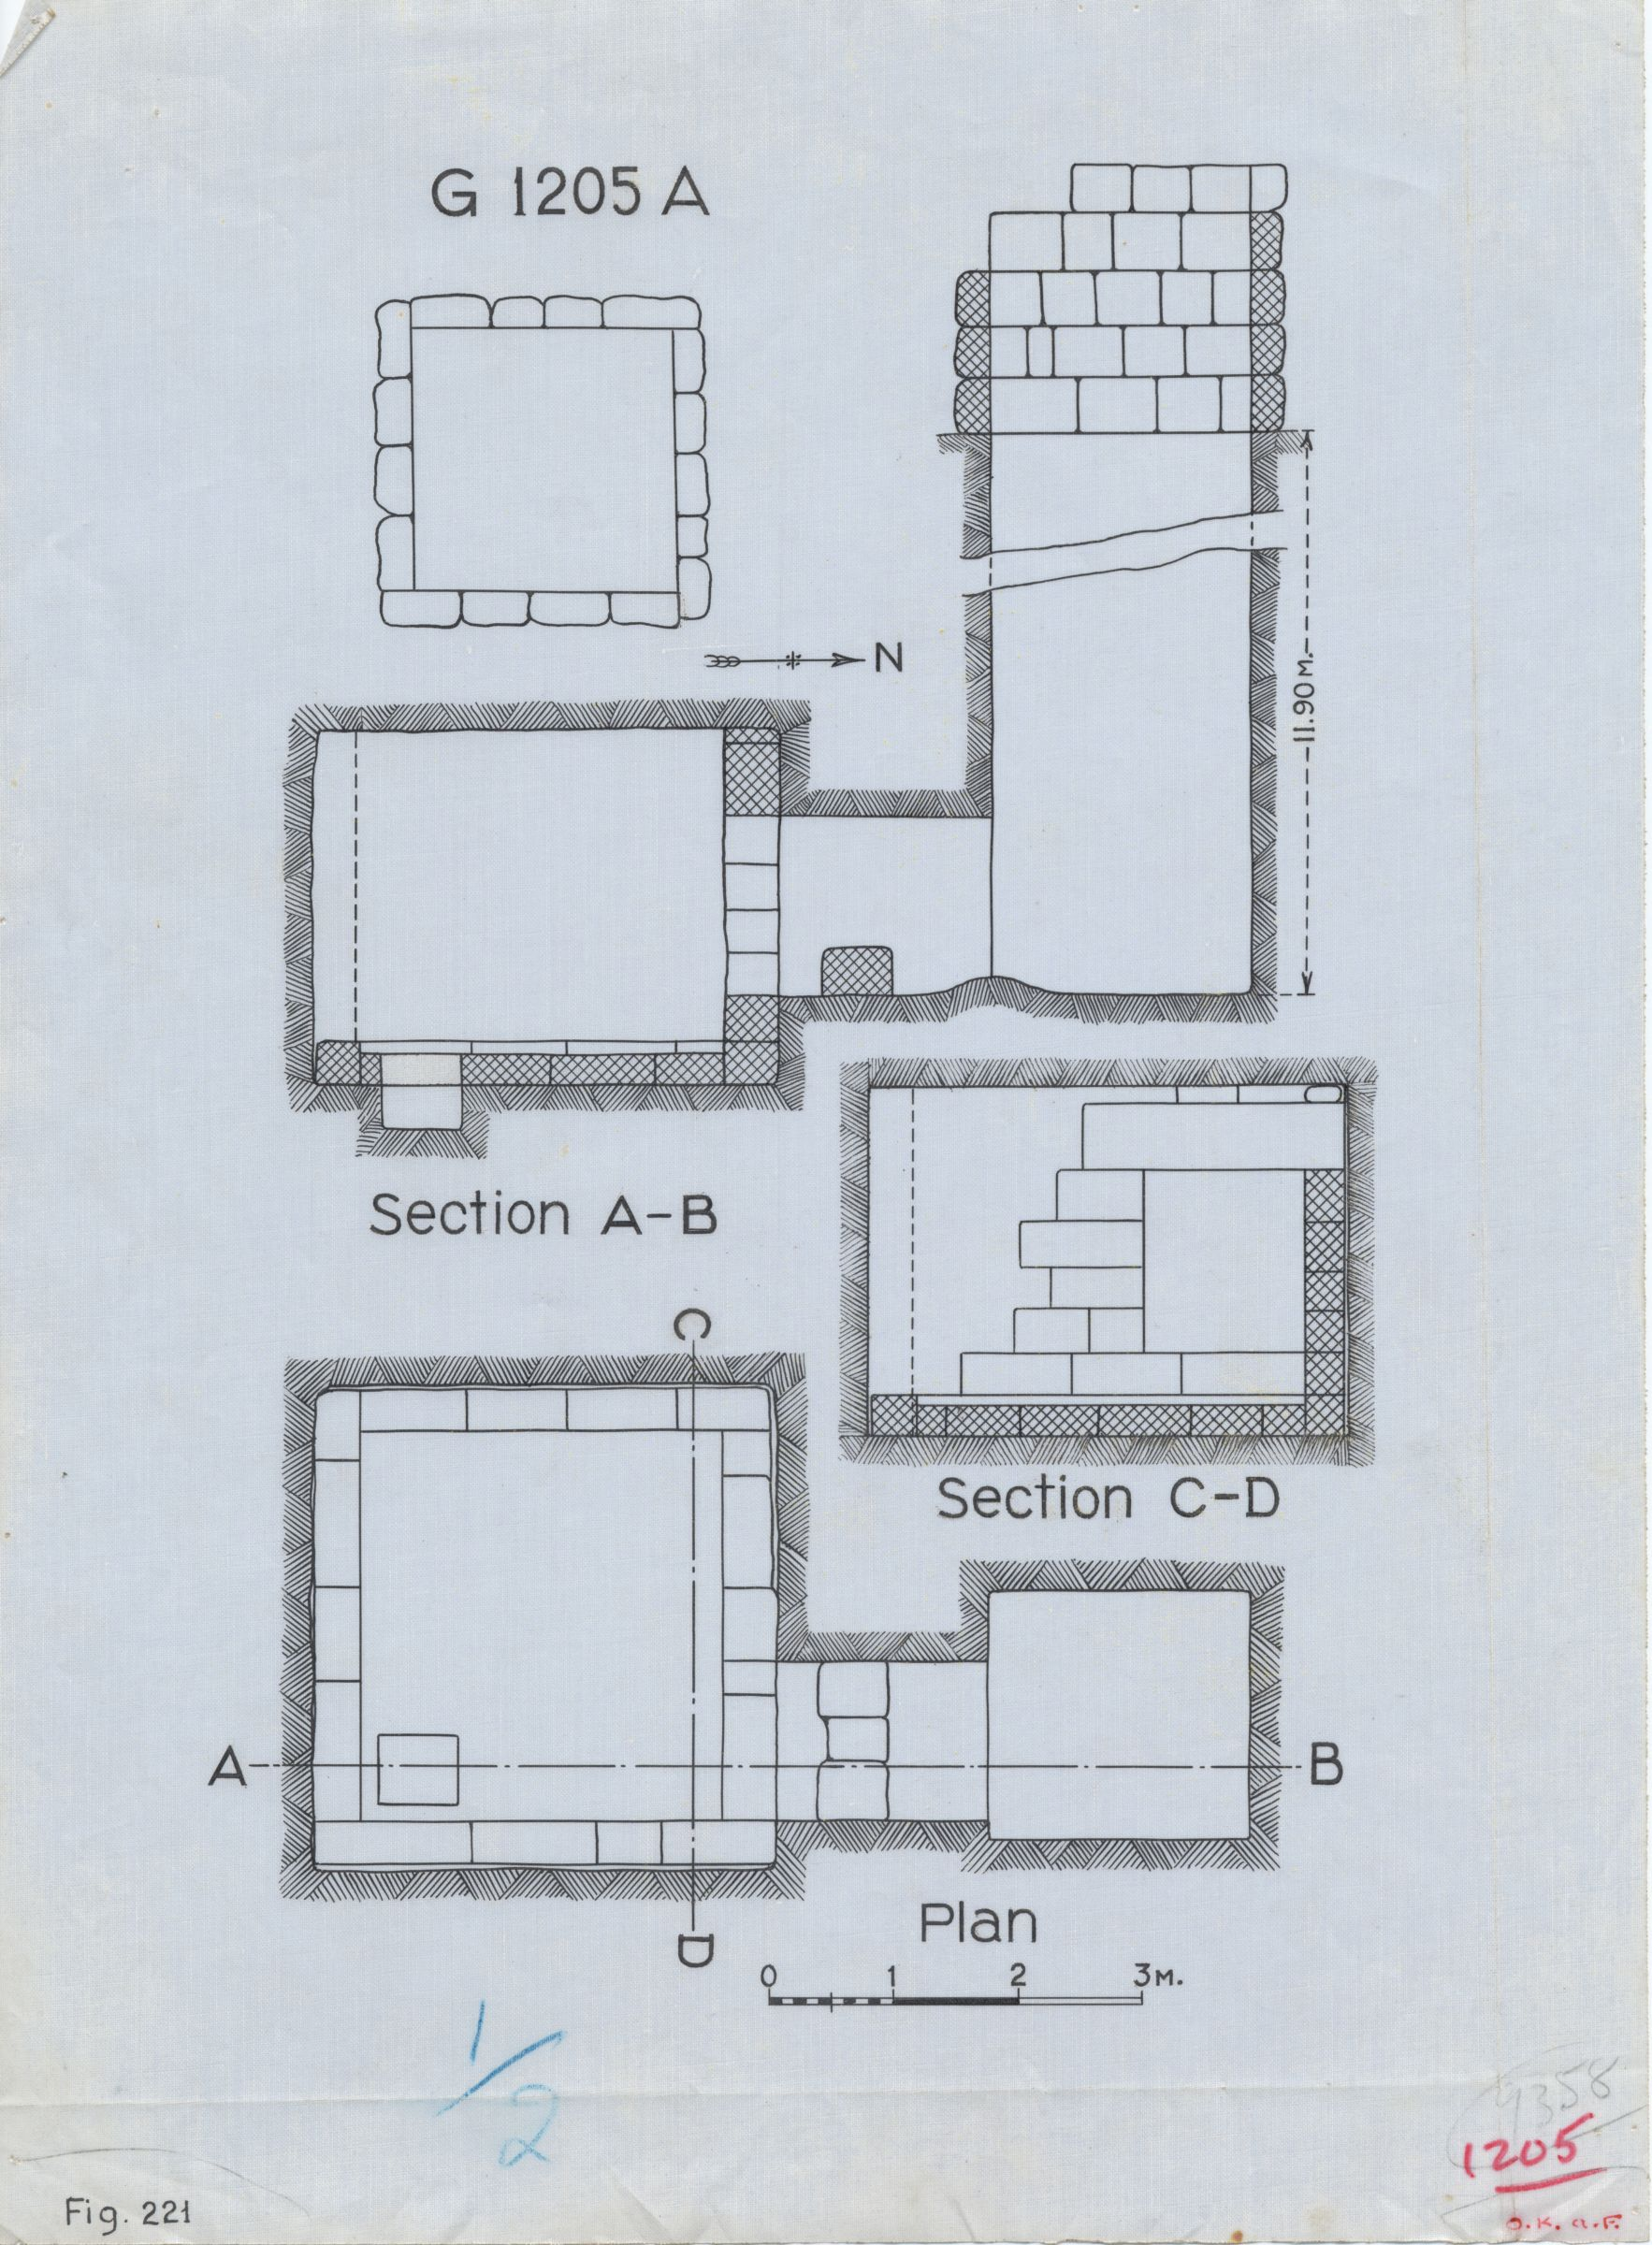 Maps and plans: G 1205, Shaft A